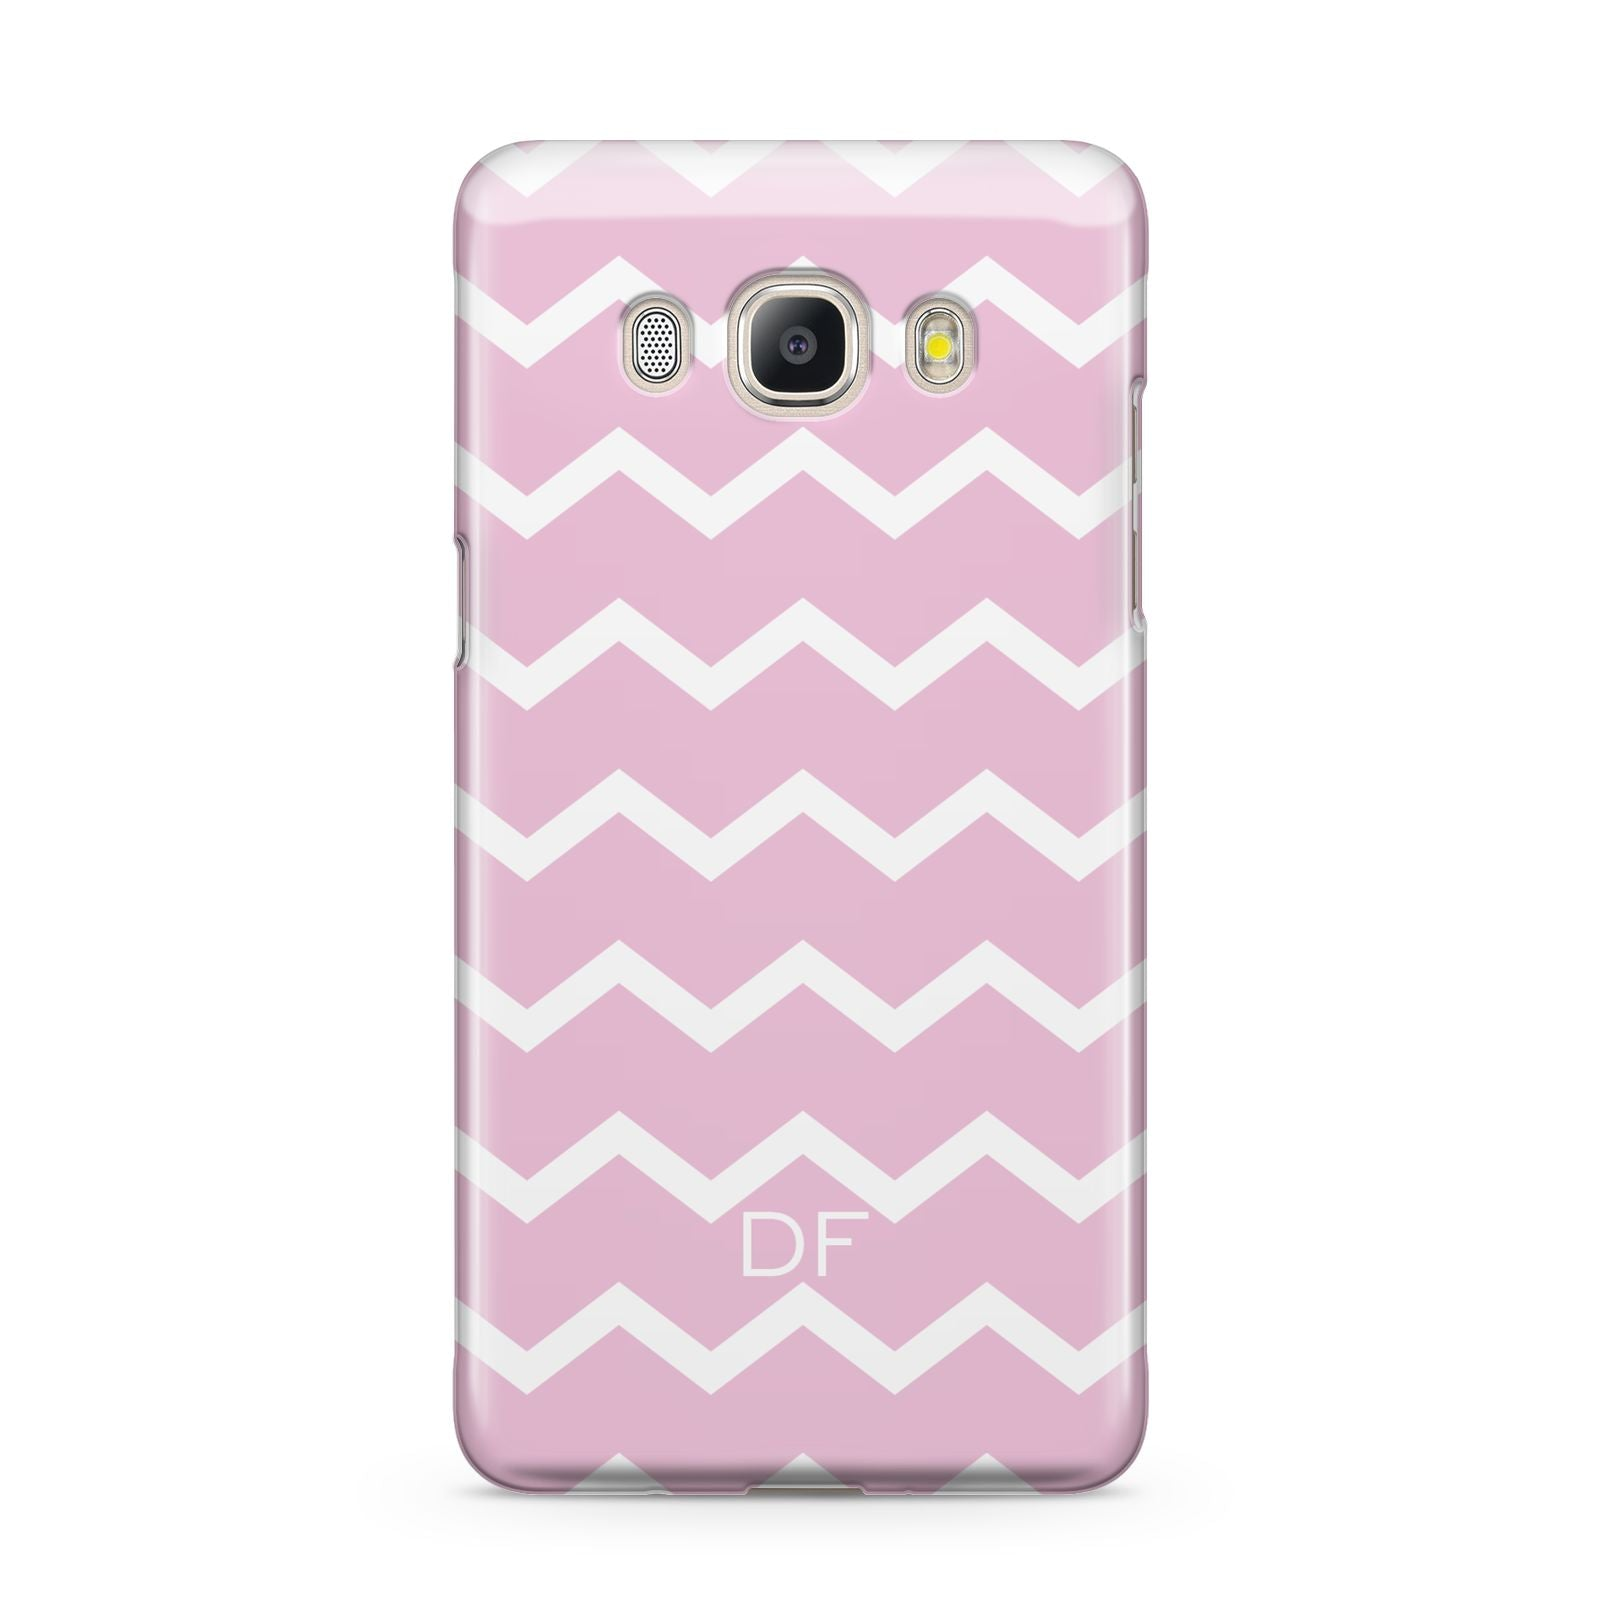 Personalised Chevron Pink Samsung Galaxy J5 2016 Case